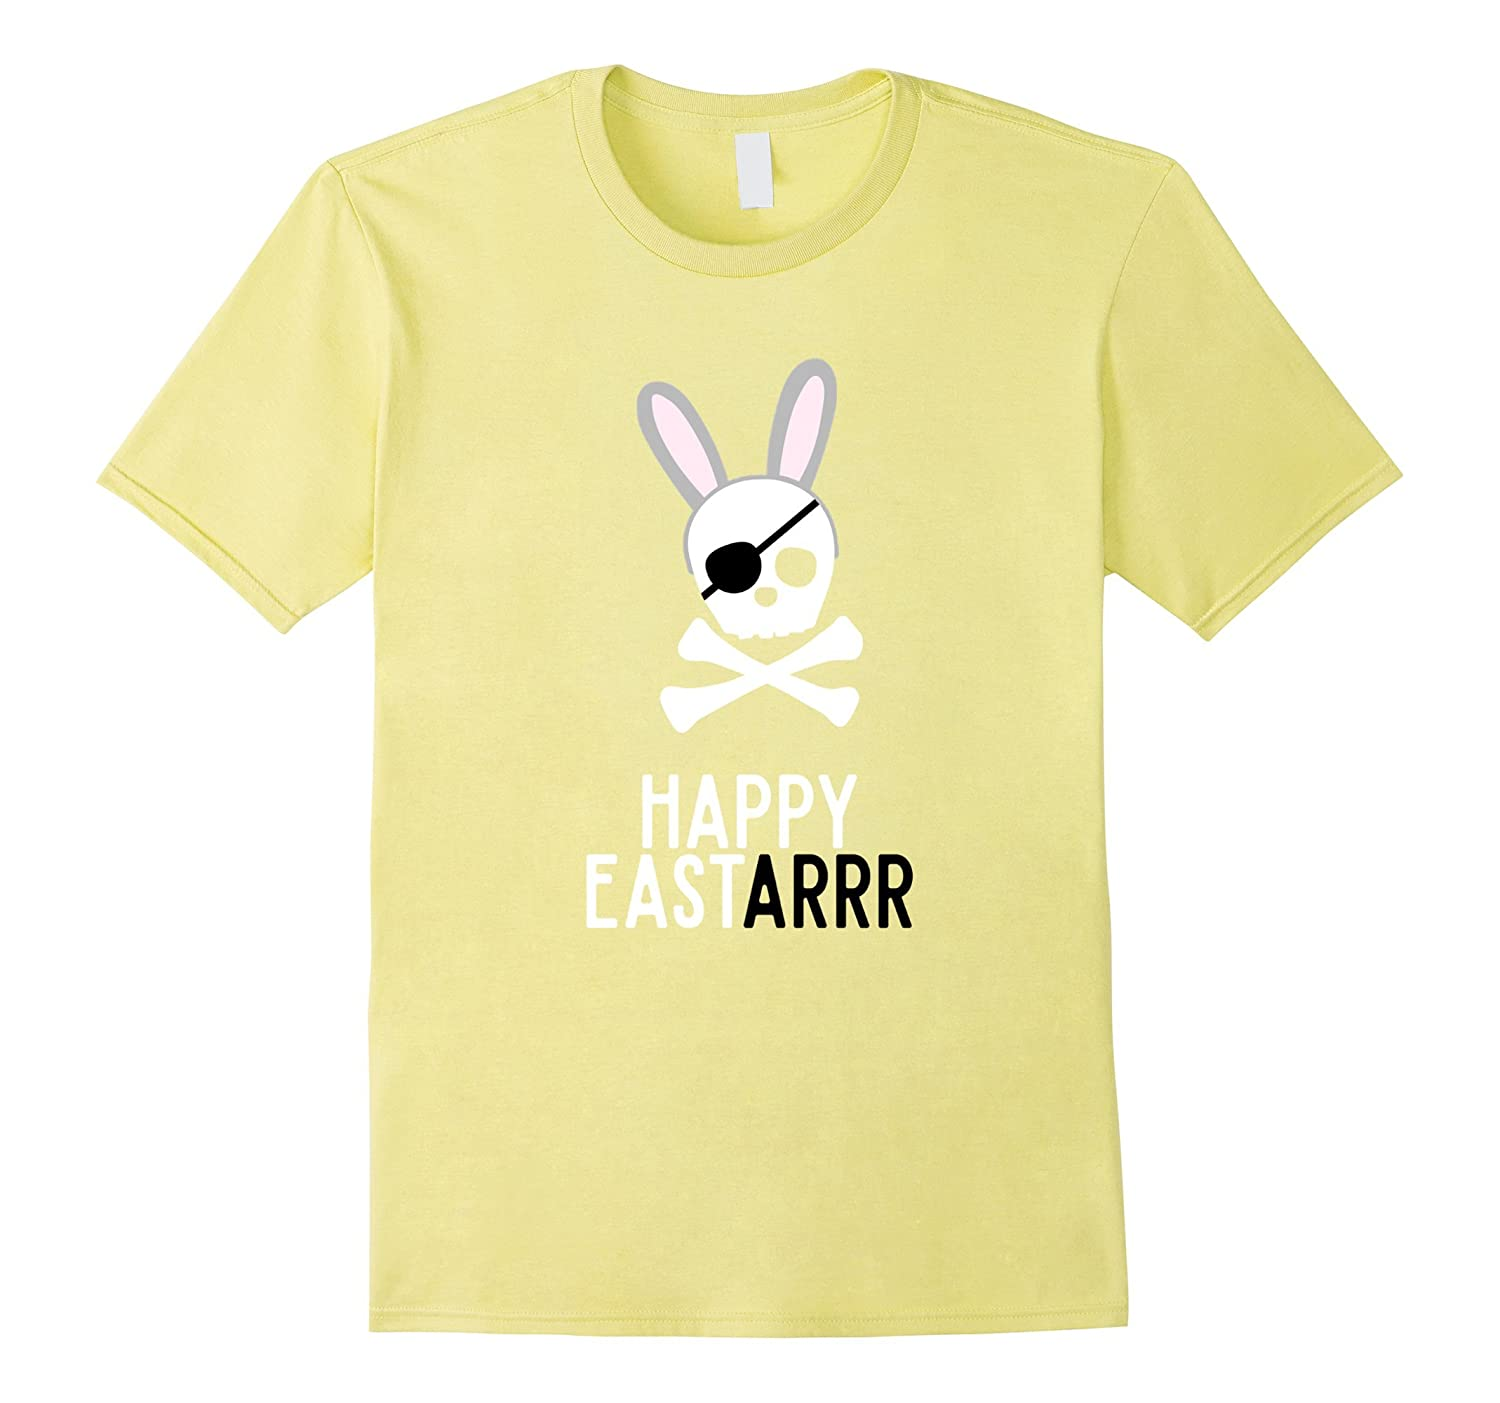 c799a2d93 Funny Easter t-shirt Happy EastARR Bunny Pirate shirt Boys-TD – Teedep